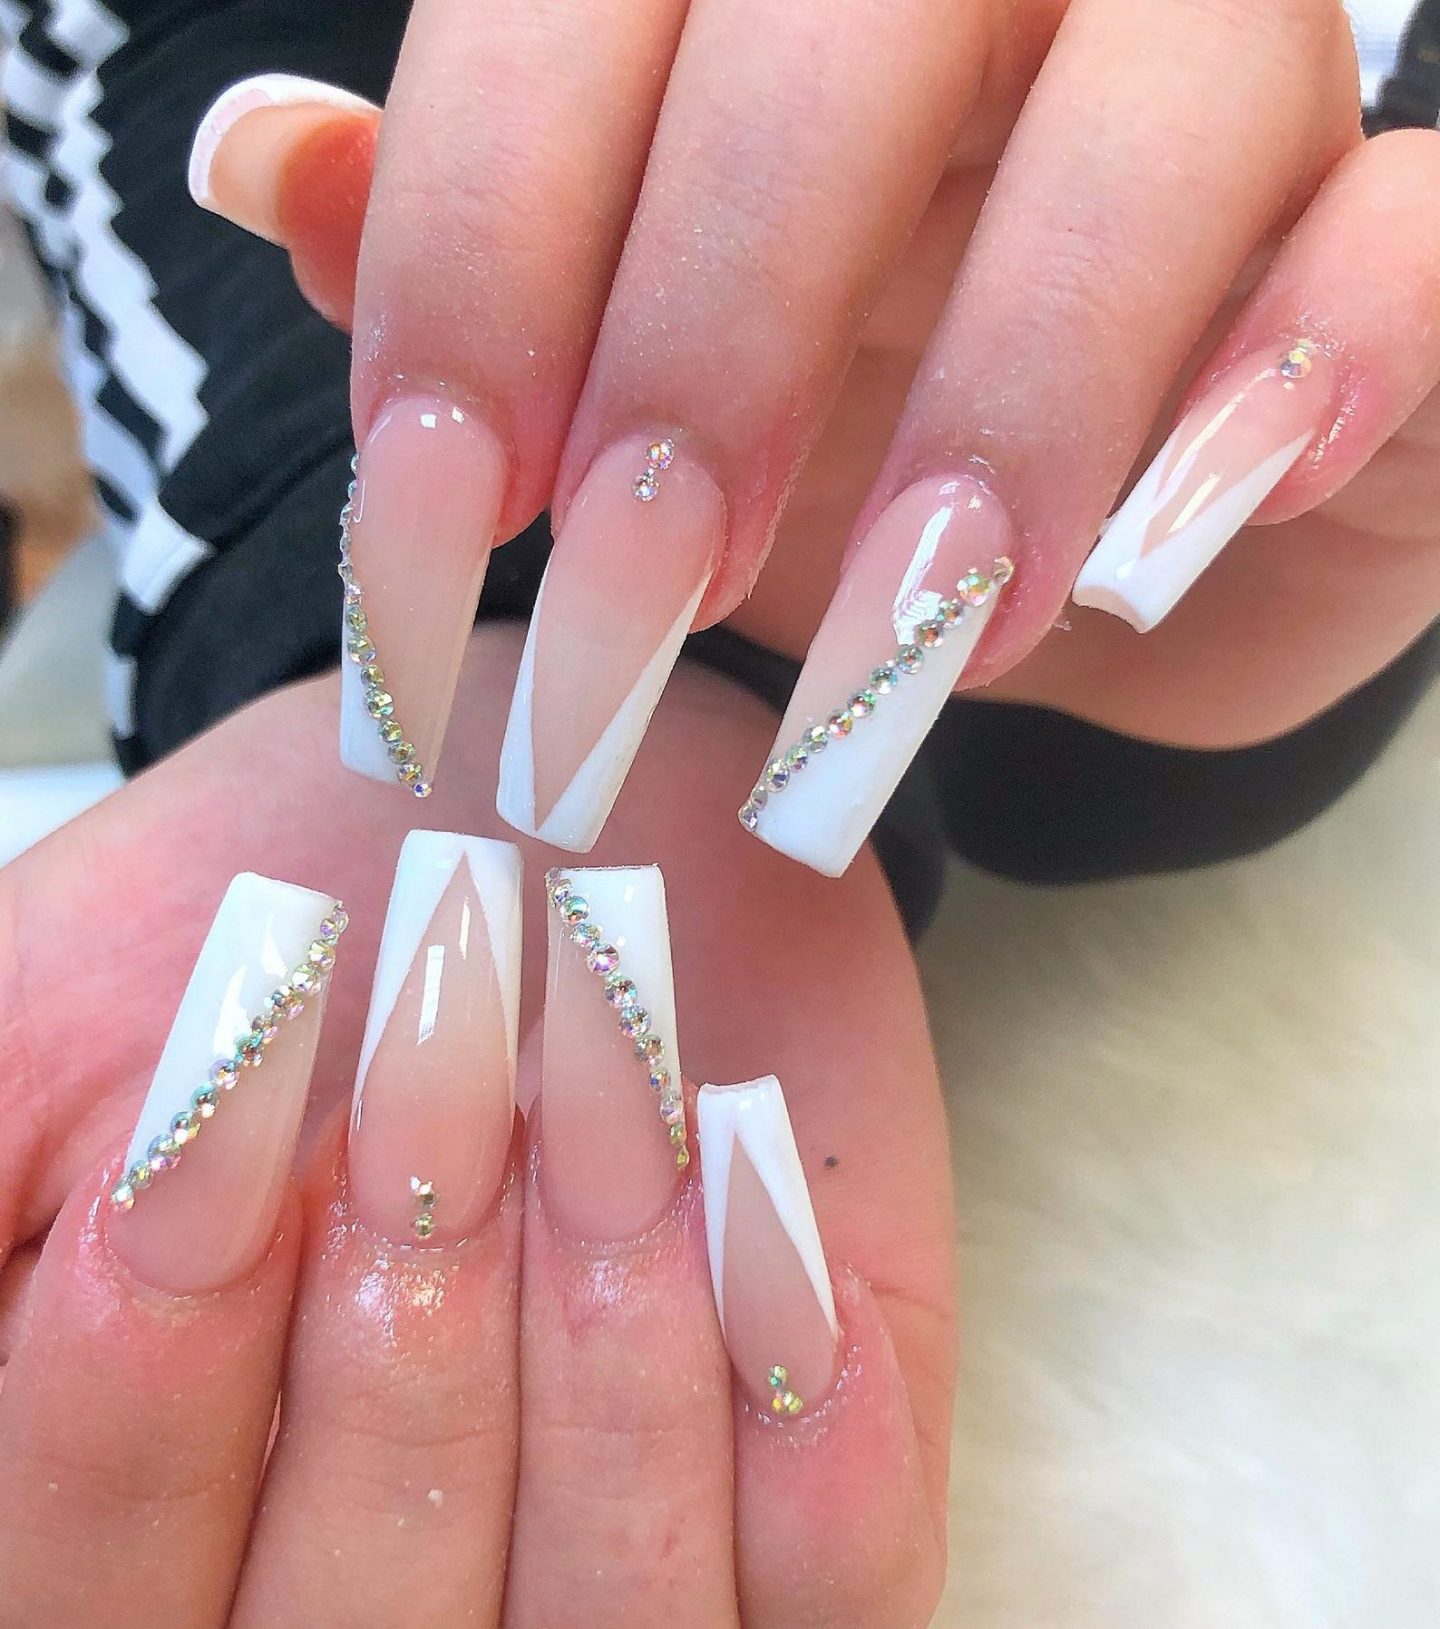 Modern French tip nails with whinestones